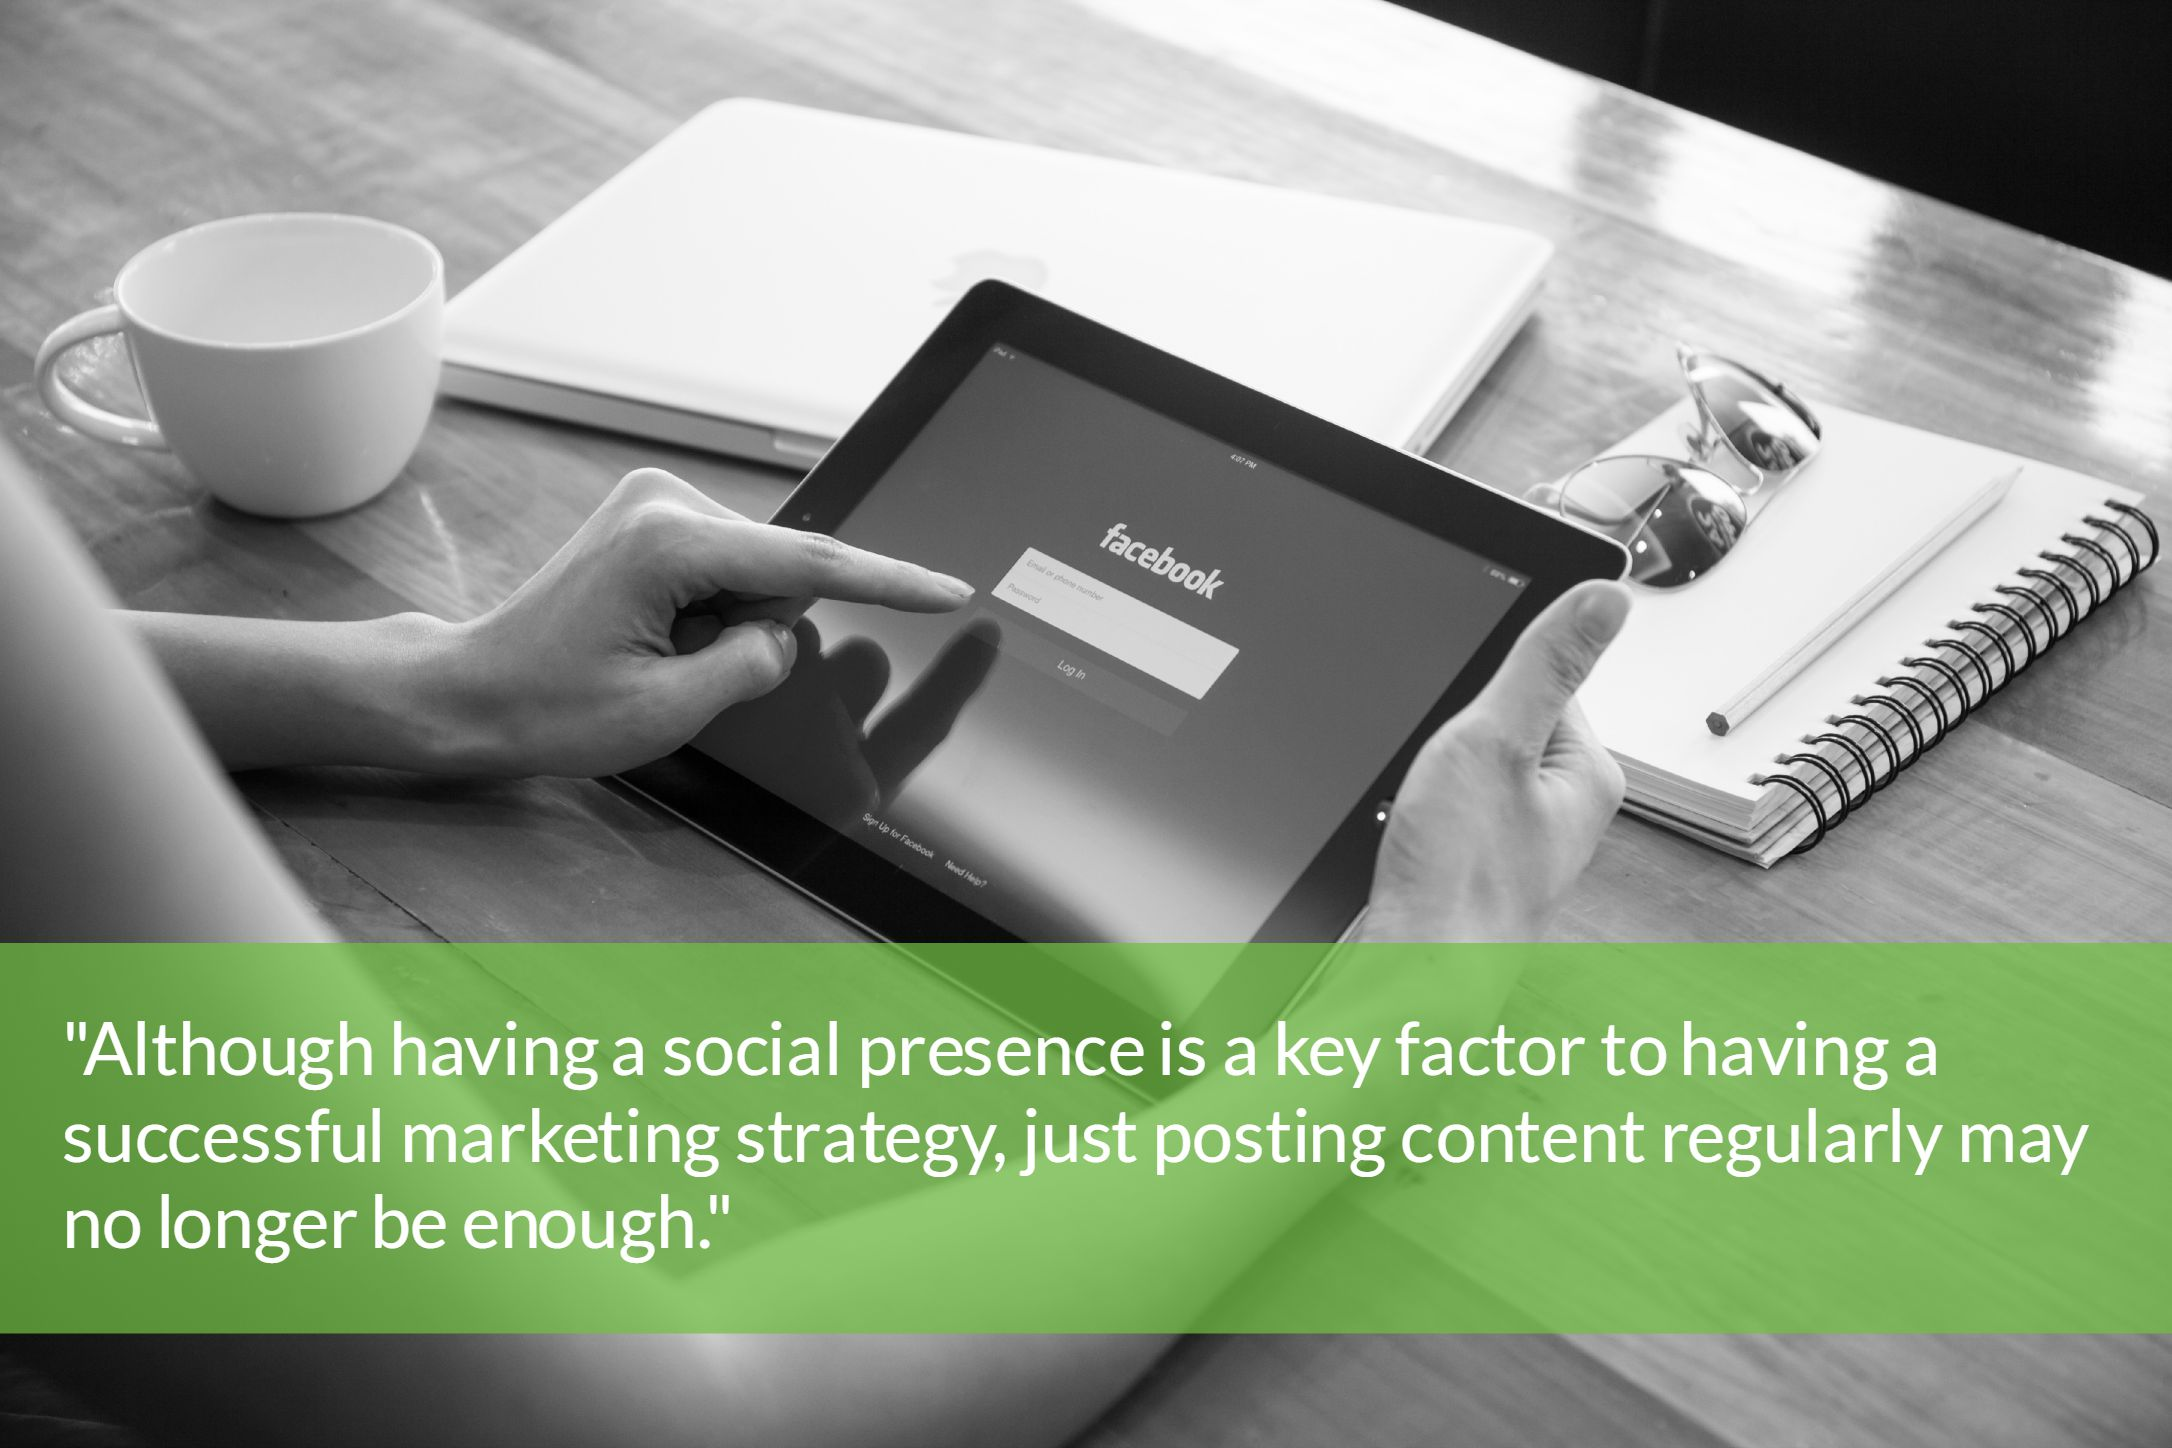 Although having social presence is a key factor to having a successful marketing strategy, just posting content regularly may no longer be enough